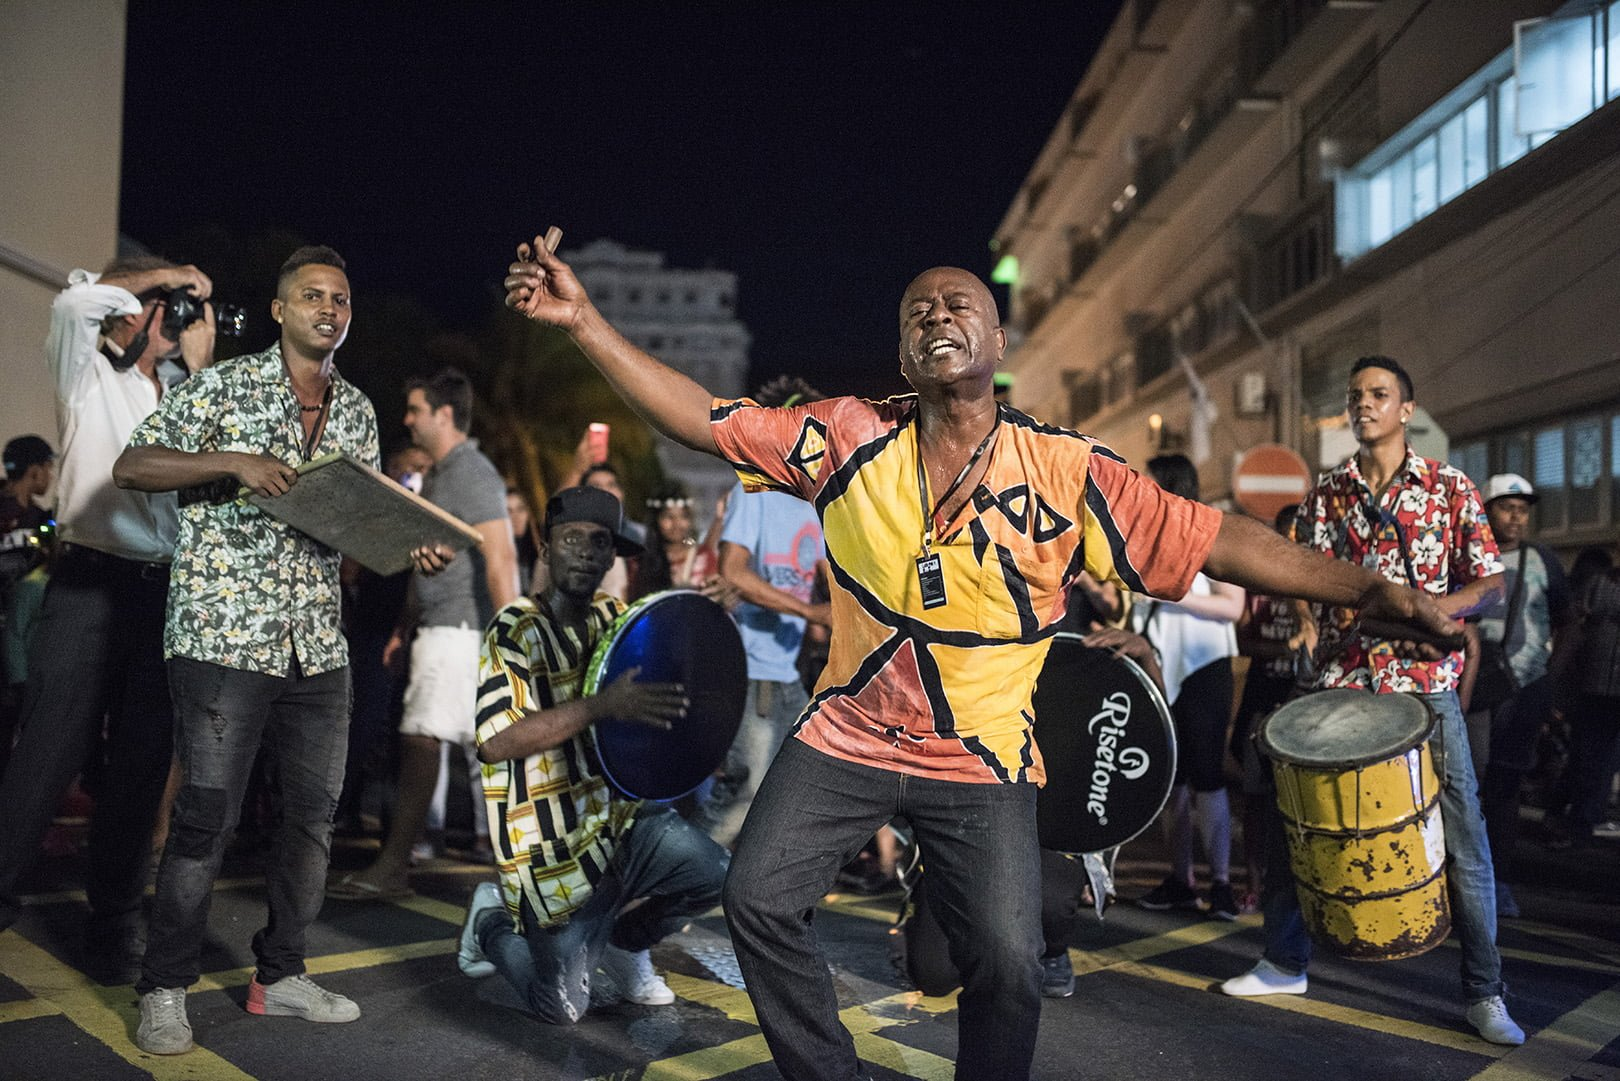 Street Performance - Porlwi by Nature - Live in Mauritius